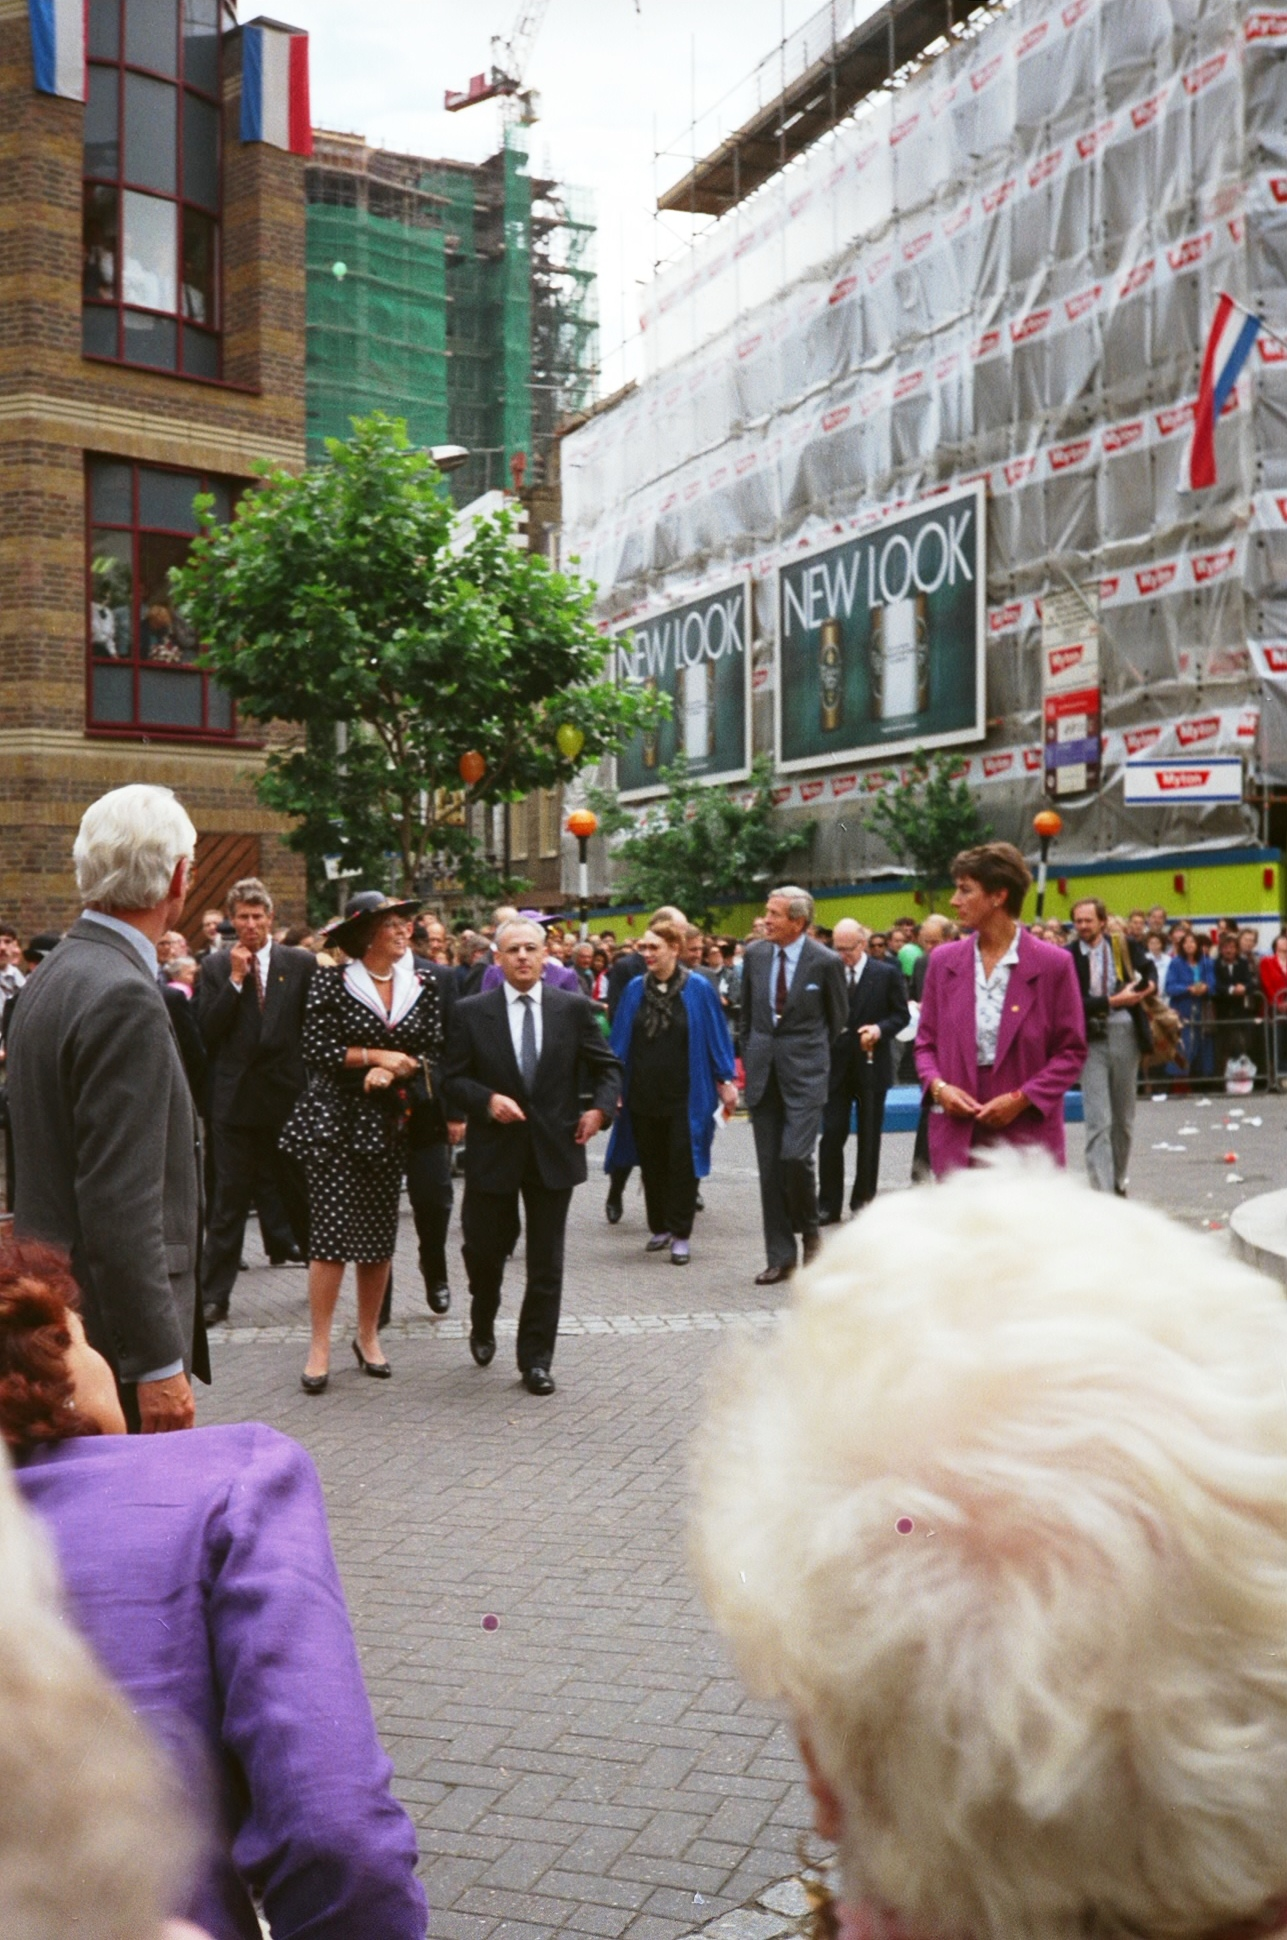 The Royal walkabout gets underway.